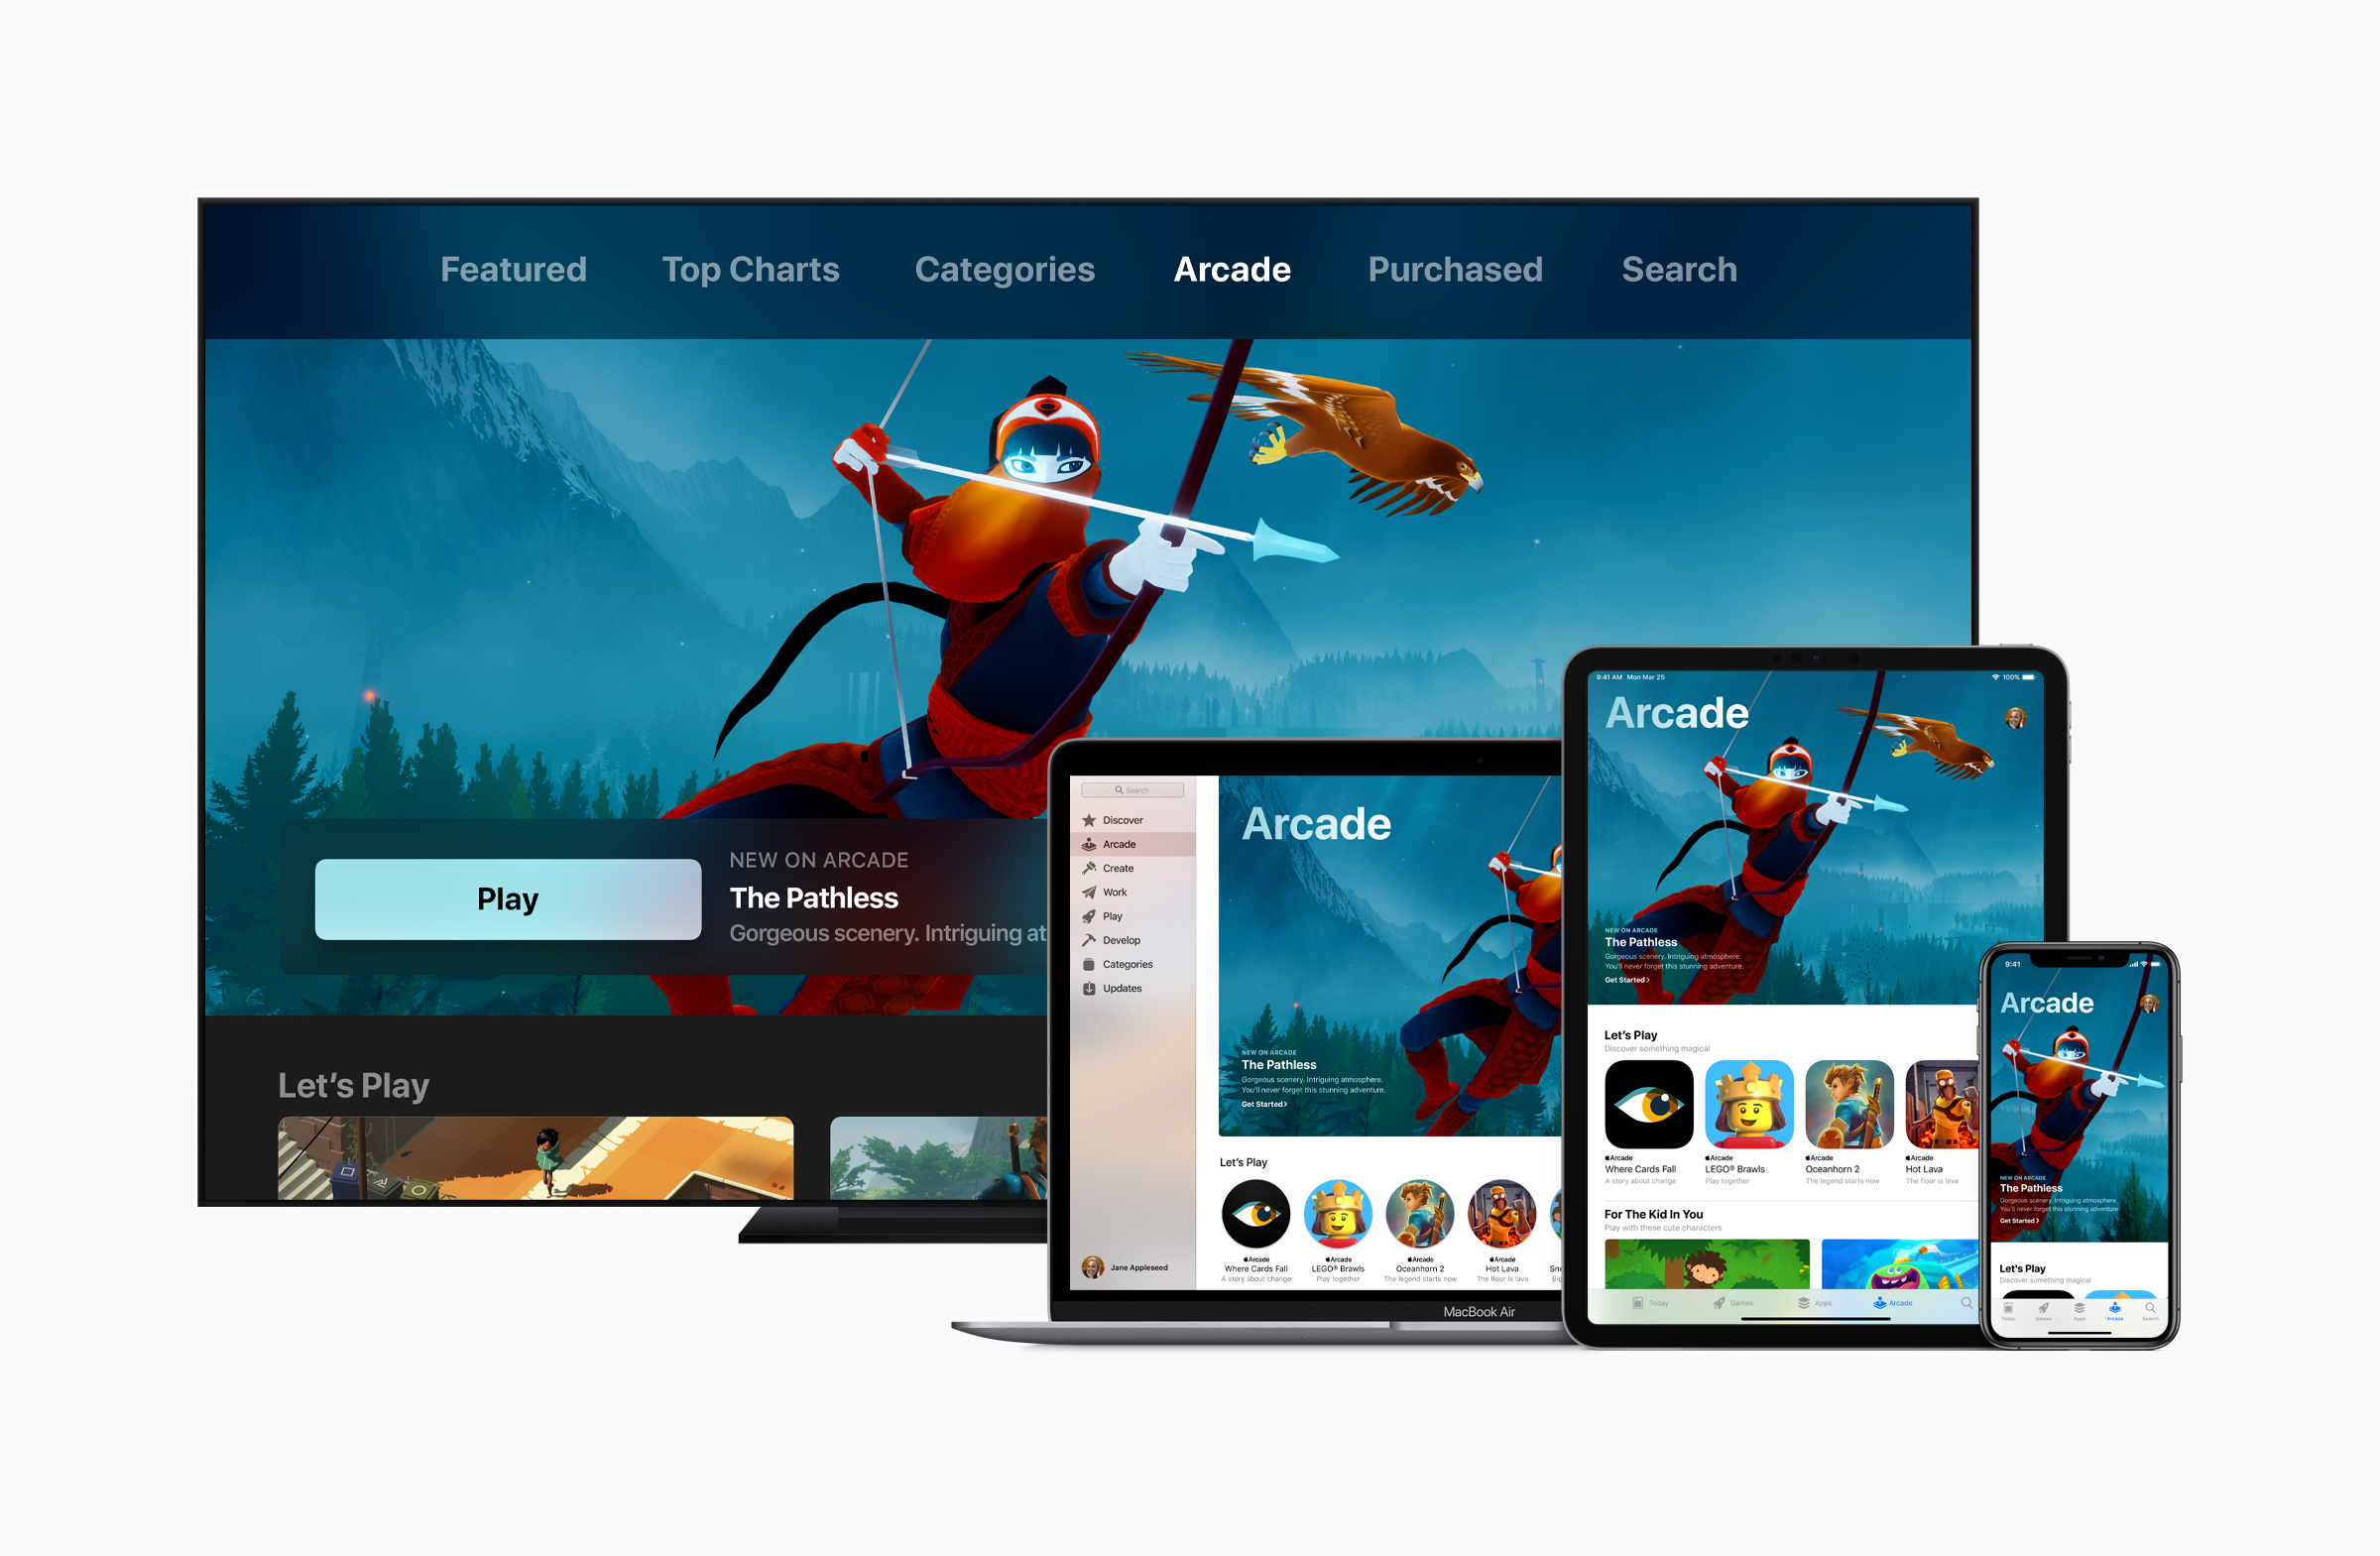 Apple-introduces-apple-arcade-apple-tv-ipad-pro-iphone-xs-macbook-pro-03252019